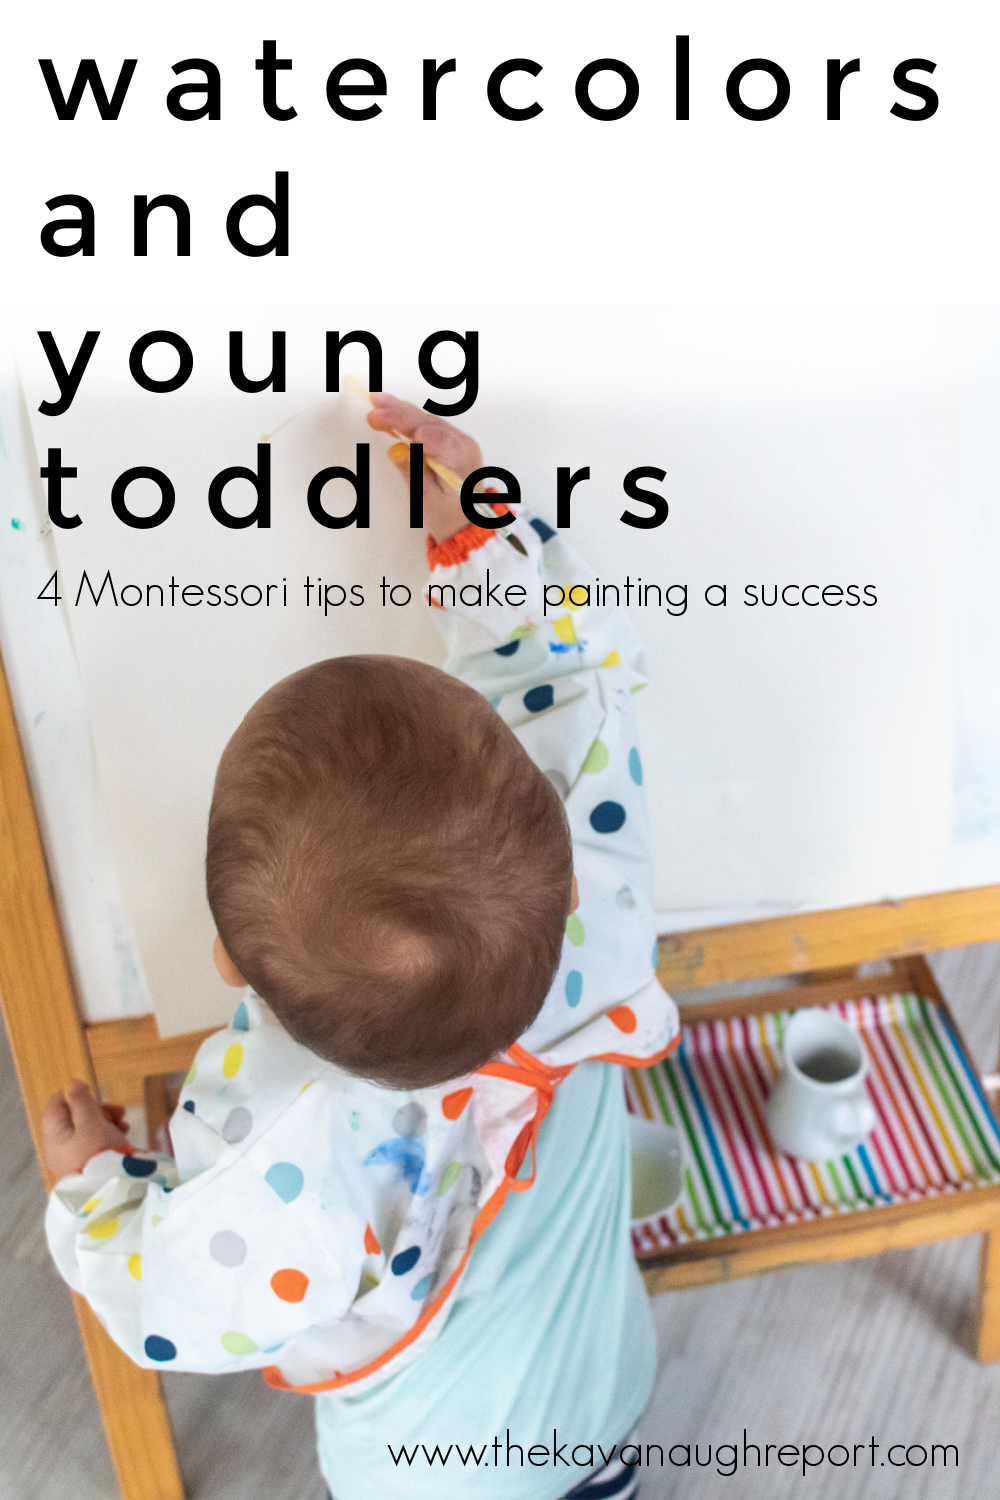 4 Montessori tips for introducing watercolor painting to 1-year-olds. These tips on how to prepare your space can make the process smoother for you.